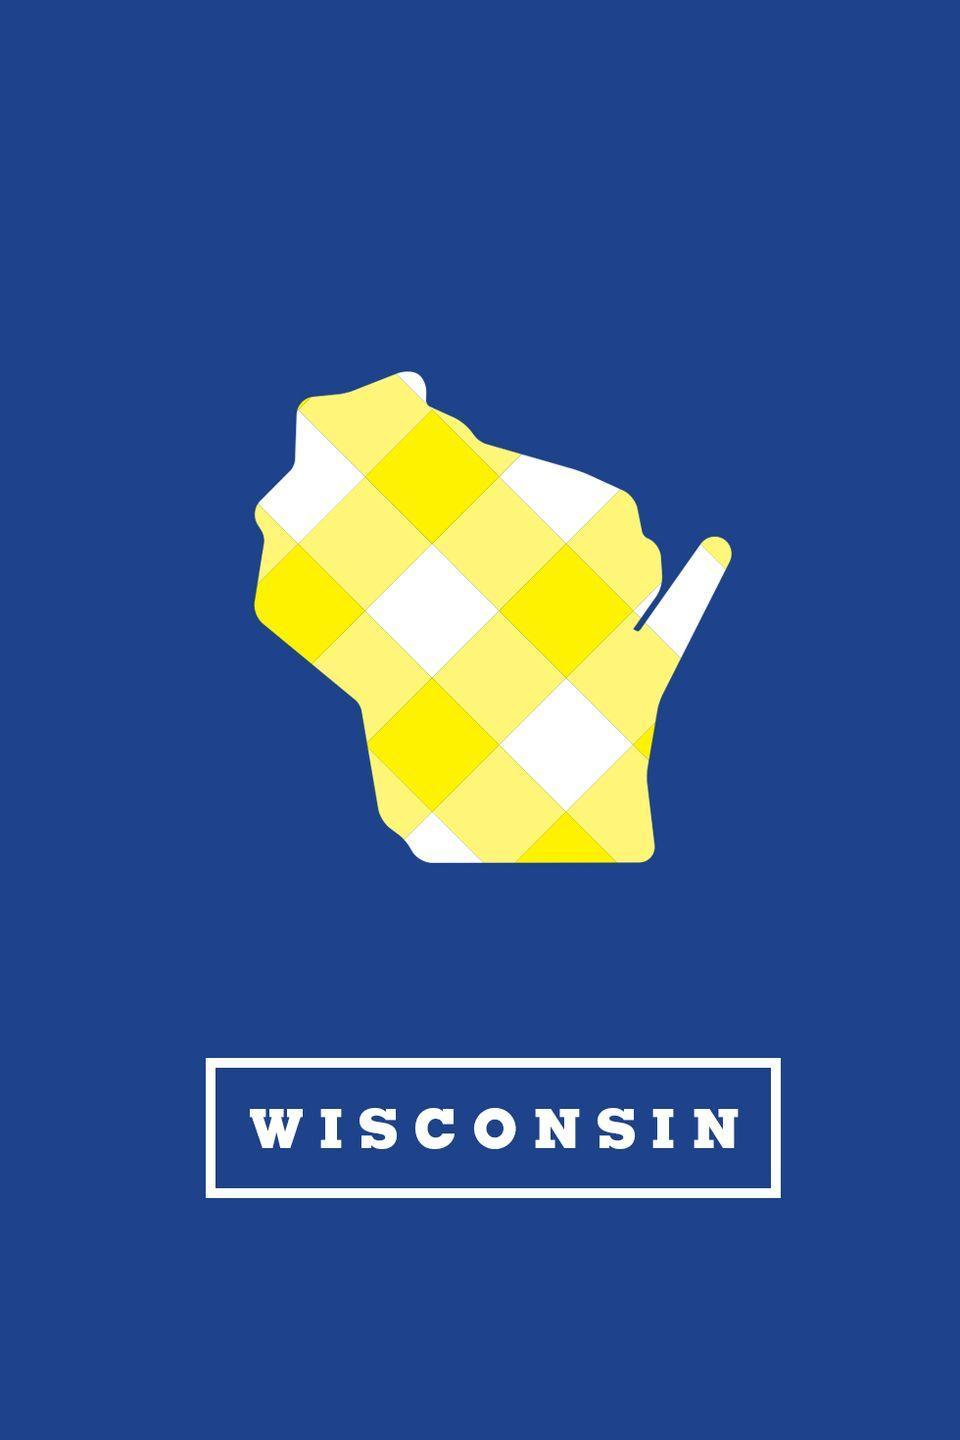 """<p>•Traveling coast to coast means going from LaCrosse to Milwaukee.</p><p>•You drink from a bubbler.</p><p>•You know how to pronounce """"brats"""" properly.</p>"""